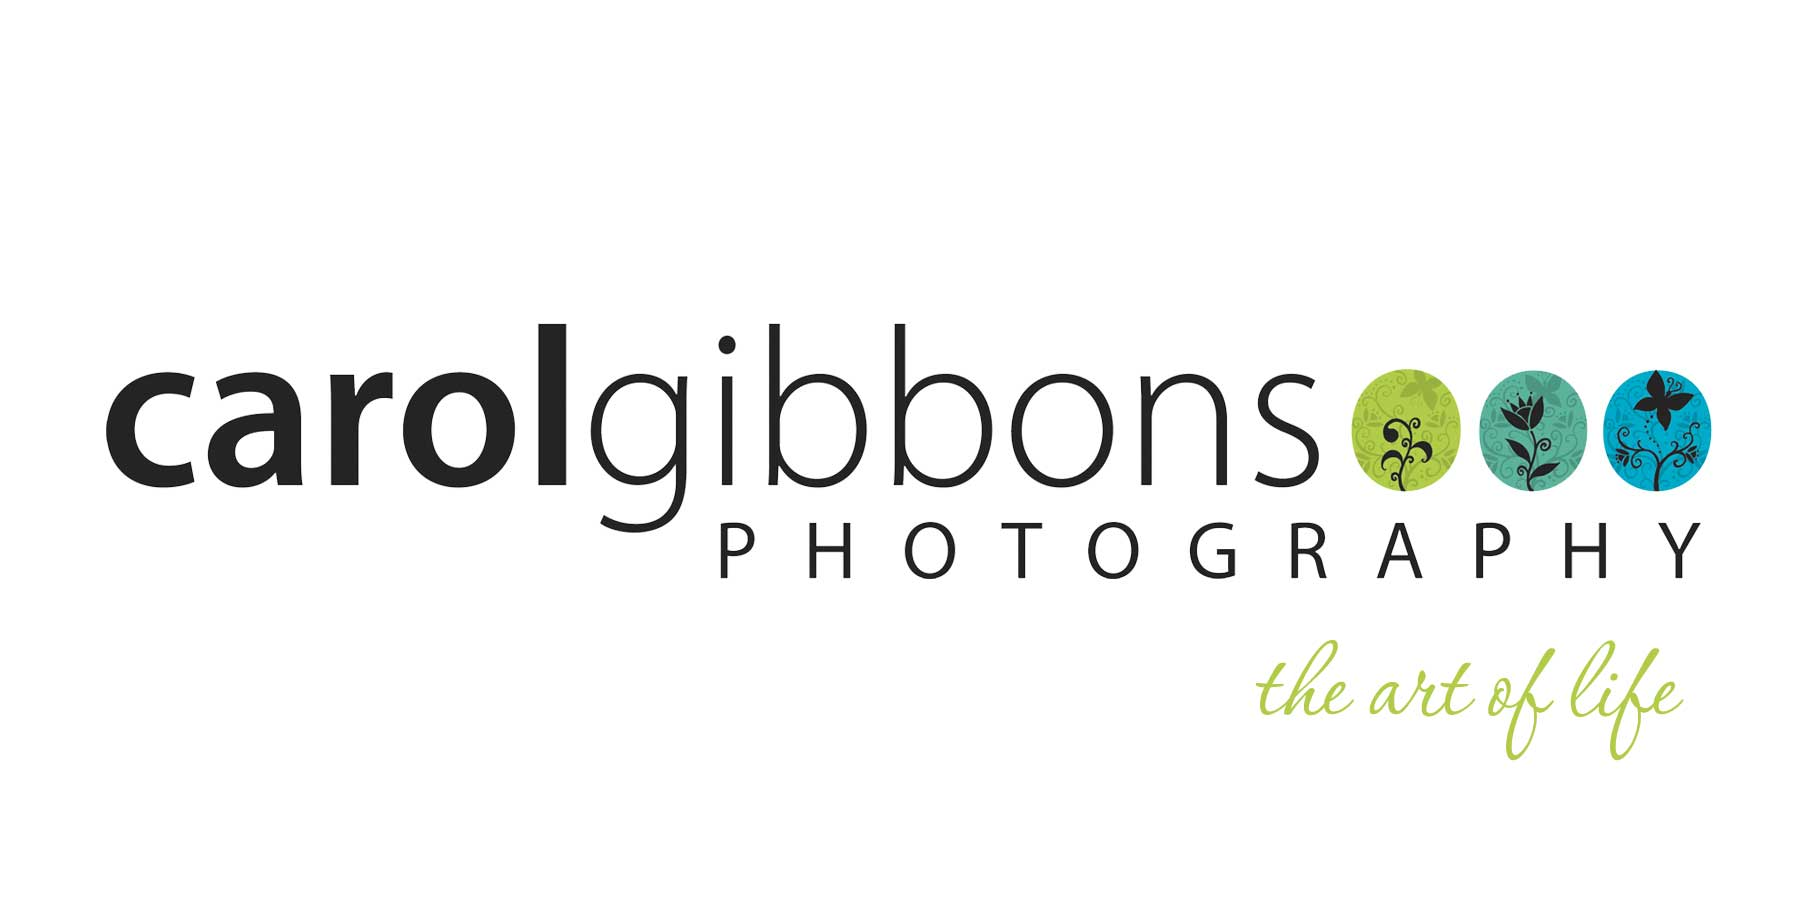 Carol Gibbons Photography Logo